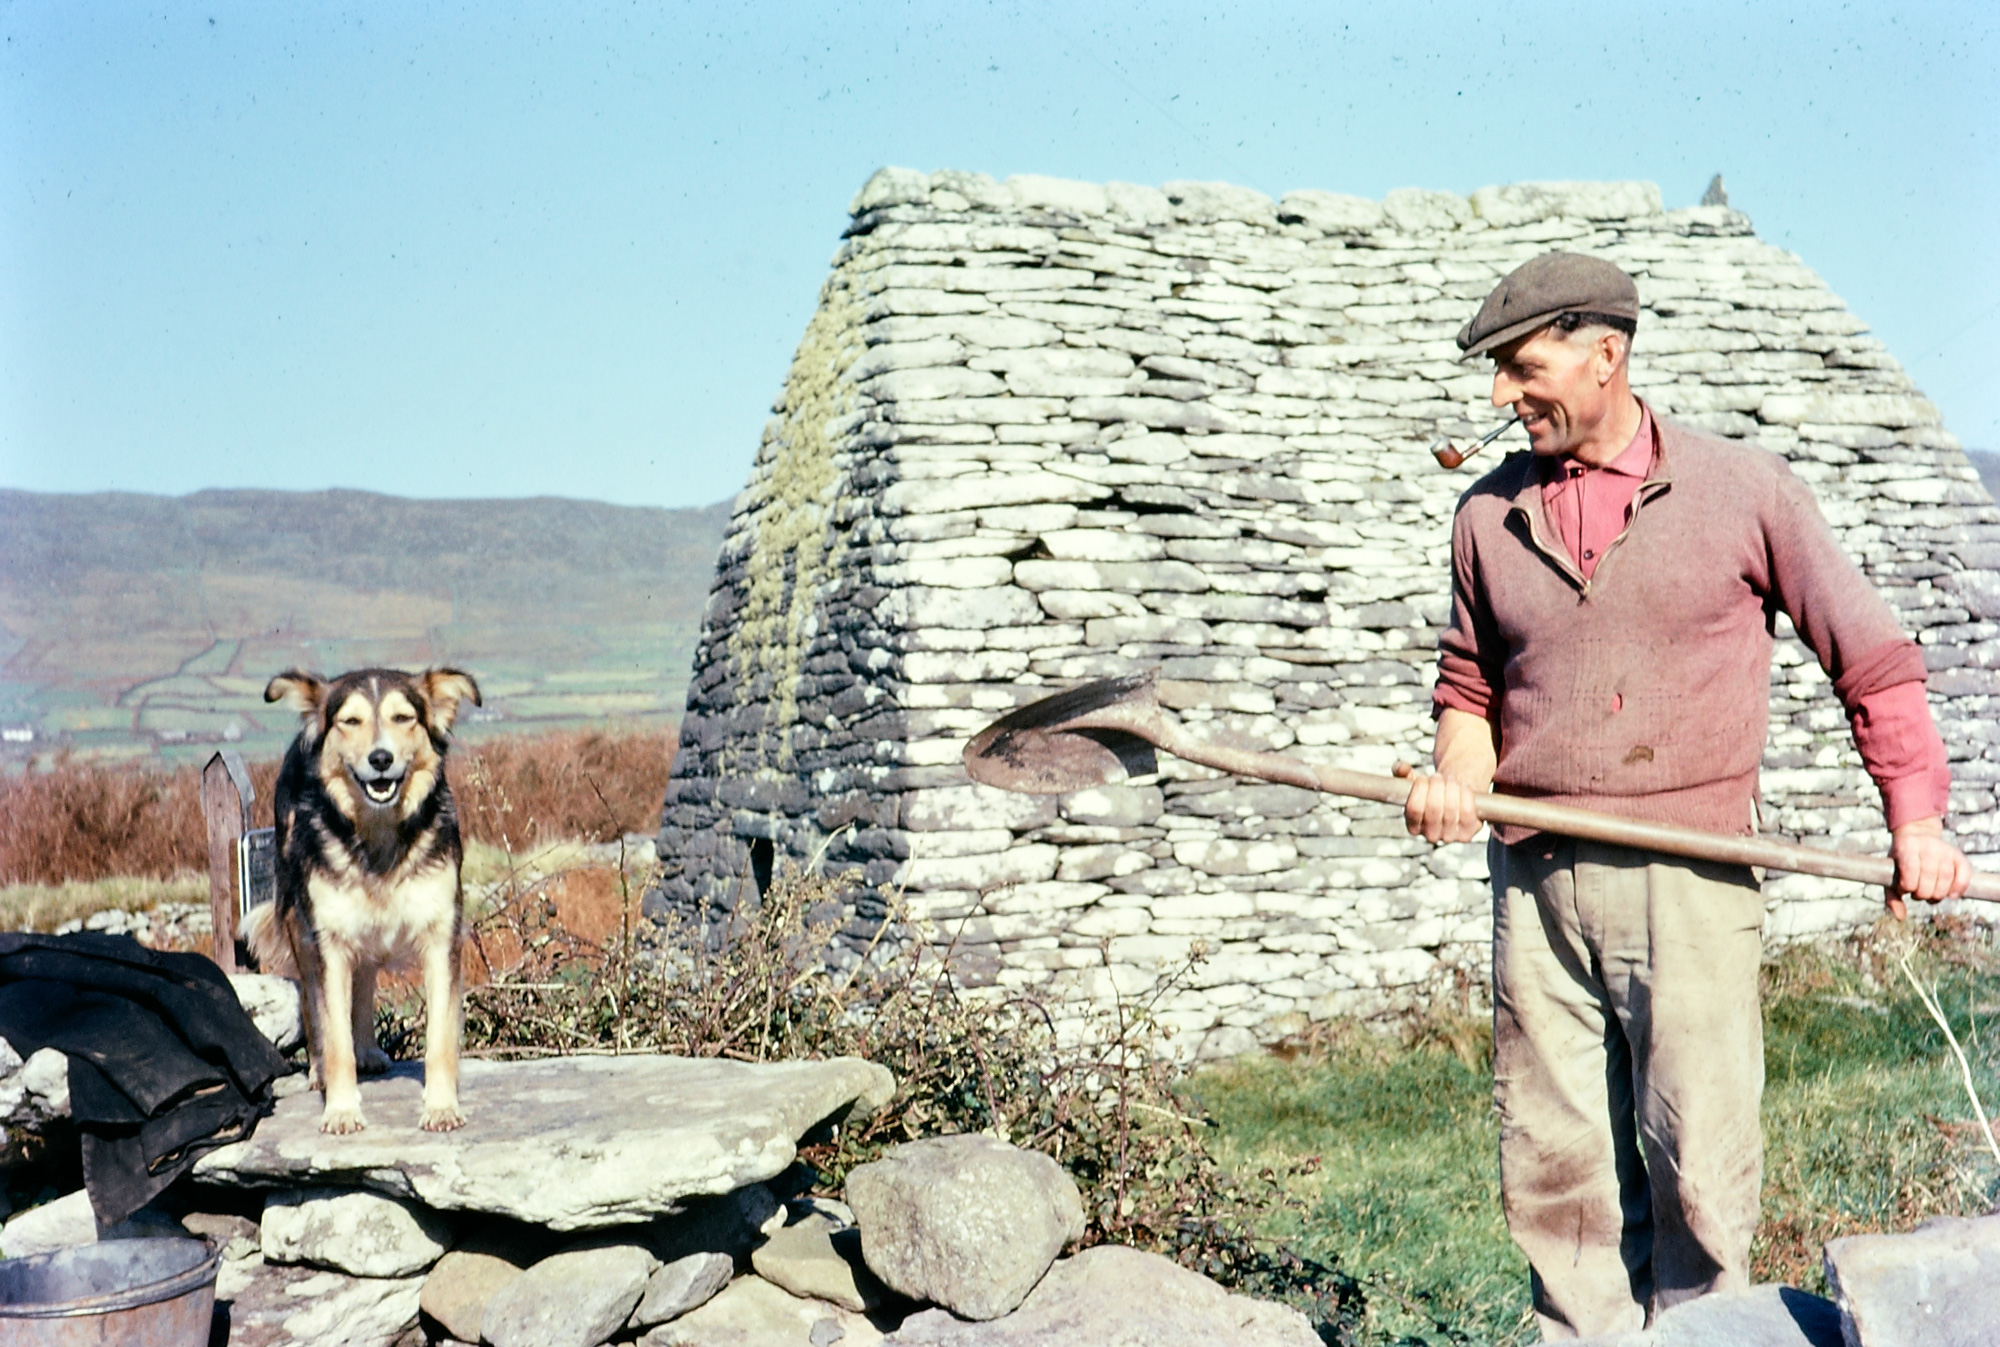 "Ireland 1960s, Thought I'd surprise you with a colour photograph today, as we haven't had one for ages. So here's one very contented looking man and his dog, working alongside the Gallarus Oratory on the beautiful Dingle Peninsula in Kerry. Any and all information on the Oratory would be gratefully received... It took a long time to put a name to the laughing face in another of our Tilbrook photos. I thought anyone who knew this man would be able to identify him, and hoped that our roving Kerry reporter Mossy Carey might get on the case, and he did: ""This is Seamus Johnson, uncle of Seamus Kelliher, who has confirmed the identity. He maintained the oratory during his lifetime."" Mossy Carey was almost beaten to the draw by Maire Oakes over on our Facebook page, who was the very first to identify Seamus. But then along came our very favourite identifier - a family member. Patrick Johnson aka Paddyj1325 says: Hi. Just heard from my brother and 2 of my sisters. They confirmed that it is indeed my Uncle Jim. I never met him but they each did when they went back over for visits. My brother Sean, who got to spend a summer with him one year at the farm, says this: ""Yup, that is him. Cool picture. He always had a dog with him. He was a very kind and gentle man. Much quieter than Da. He was paid by the government to be the caretaker of that ancient church. He used to stand up at the oratory and tell people the history of the place. People used to think he worked there and they would tip him. One last unknown fact. The history books say the church is the same as it was 1,000 years ago, untouched by man. WRONG! The stones across the top were put there by Dad's Father to keep the rain out because he kept sheep in there. Originally the top was open to let light in. Uncle Jim used to have a very old picture of the place and you could see someone added a top row. Facts you can't find in a book."" Photographer: Richard Tilbrook Collection: Tilbrook Photographic Collection Date: Around 1960"